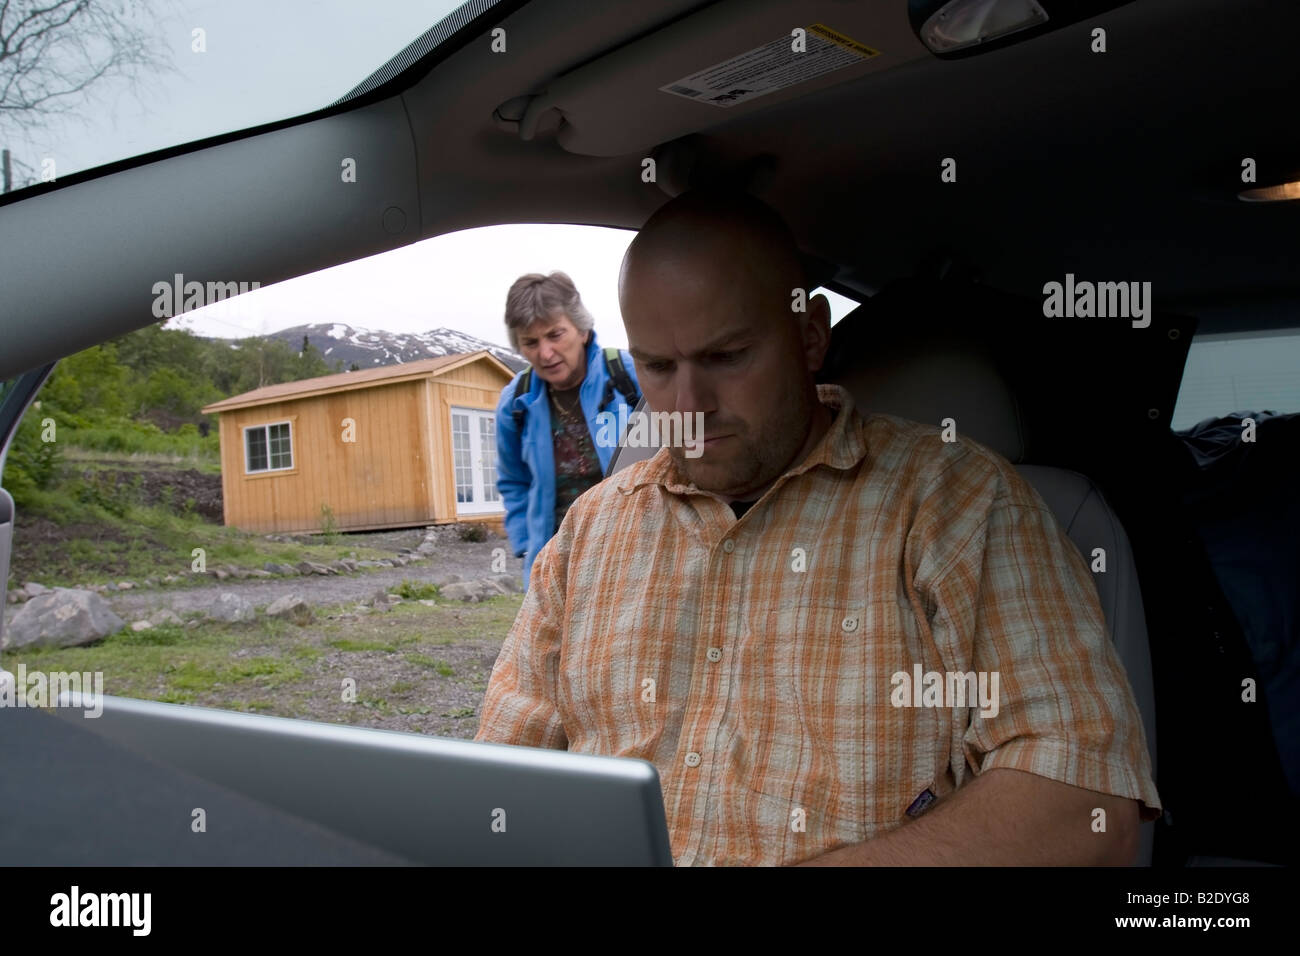 Photographer using mobile office in a car to upload photos to agencies, Palmer, Alaska, United States of America - Stock Image